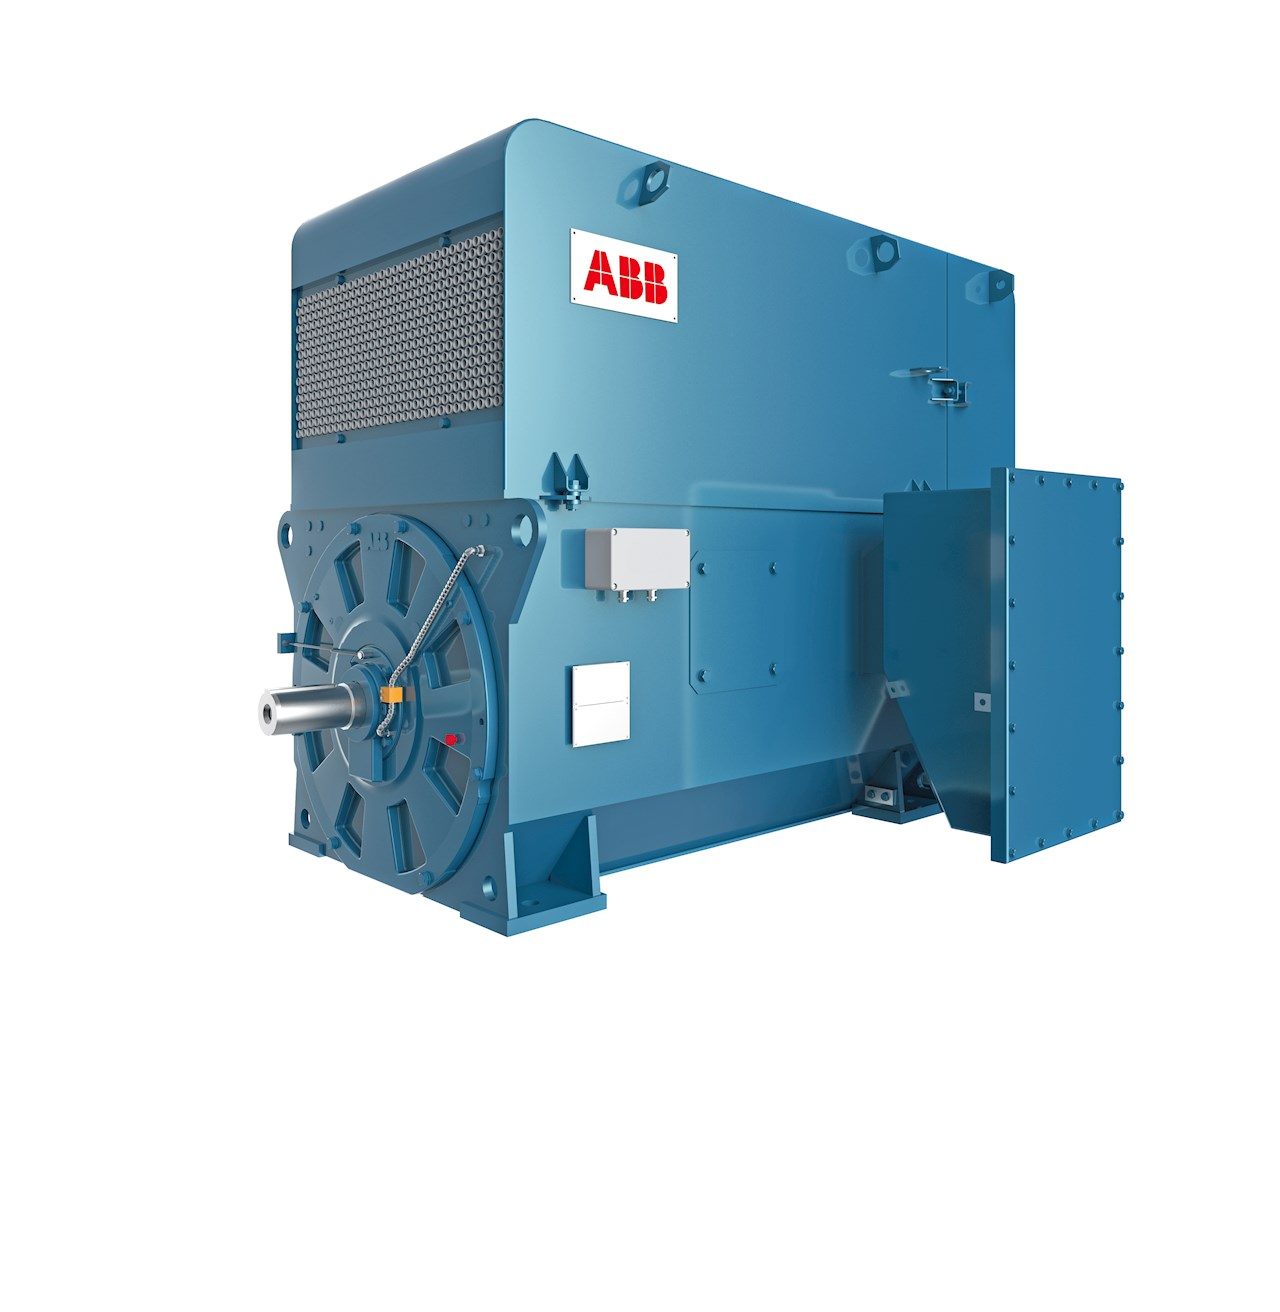 ABB's modular induction NMI motor is optimized to meet the needs of power, water and other industries.